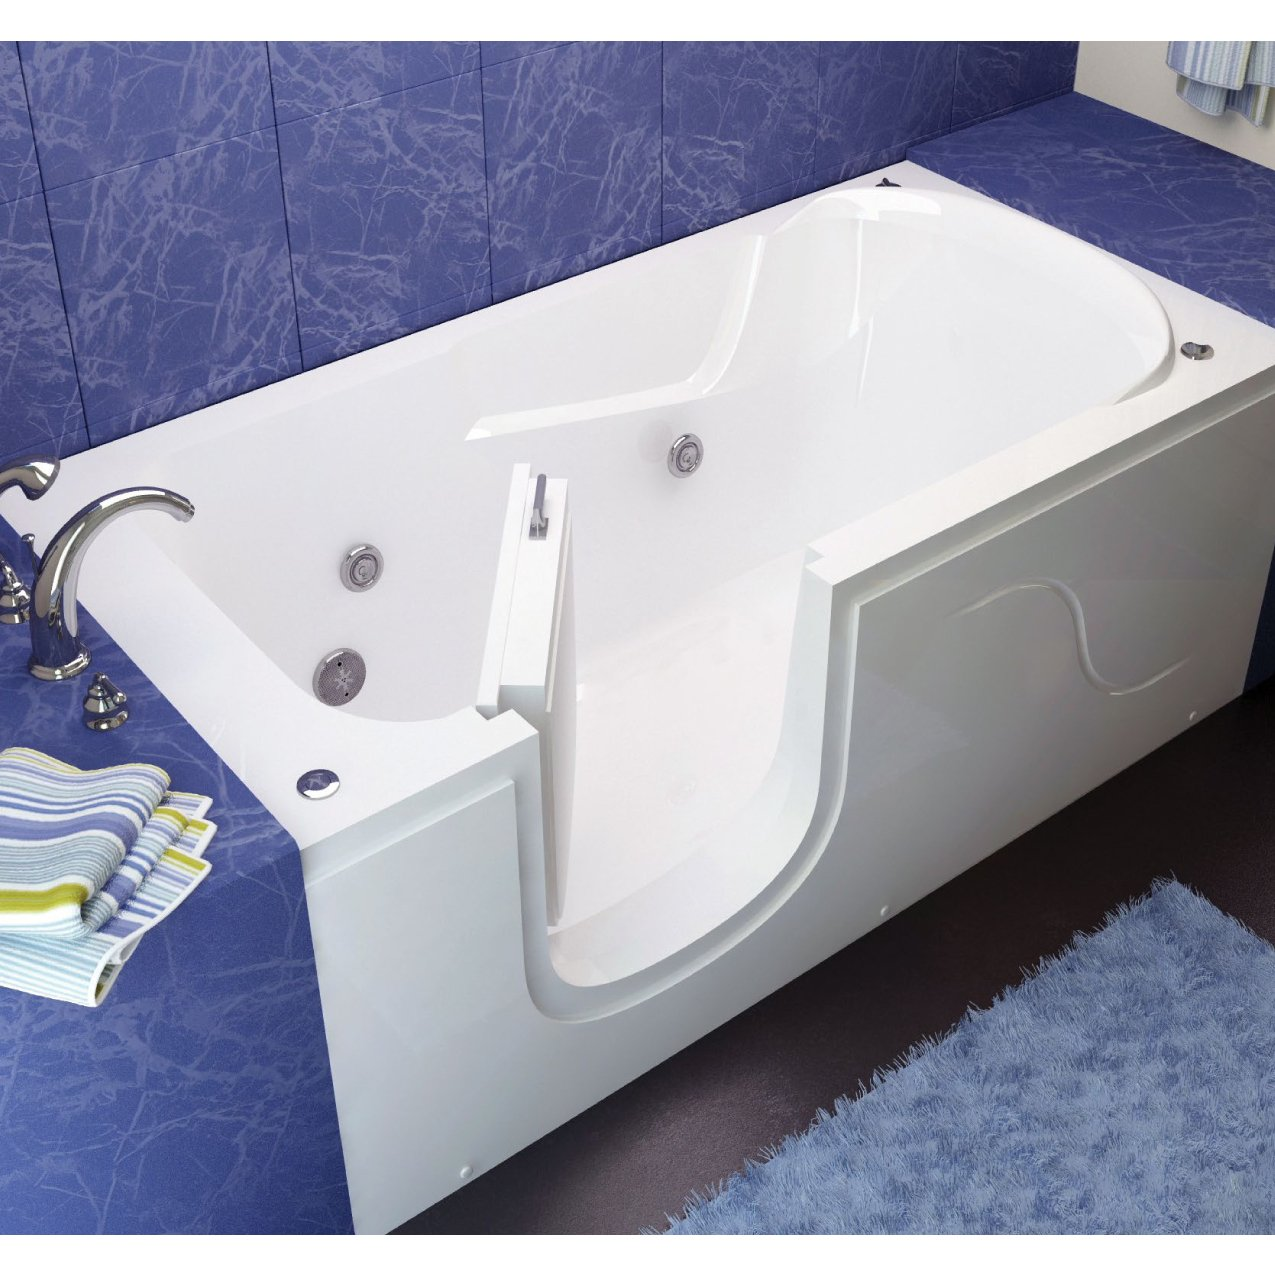 meditub 3060si series step in 30 x 60 acrylic fiberglass walk in bathtub - Step In Bathtub